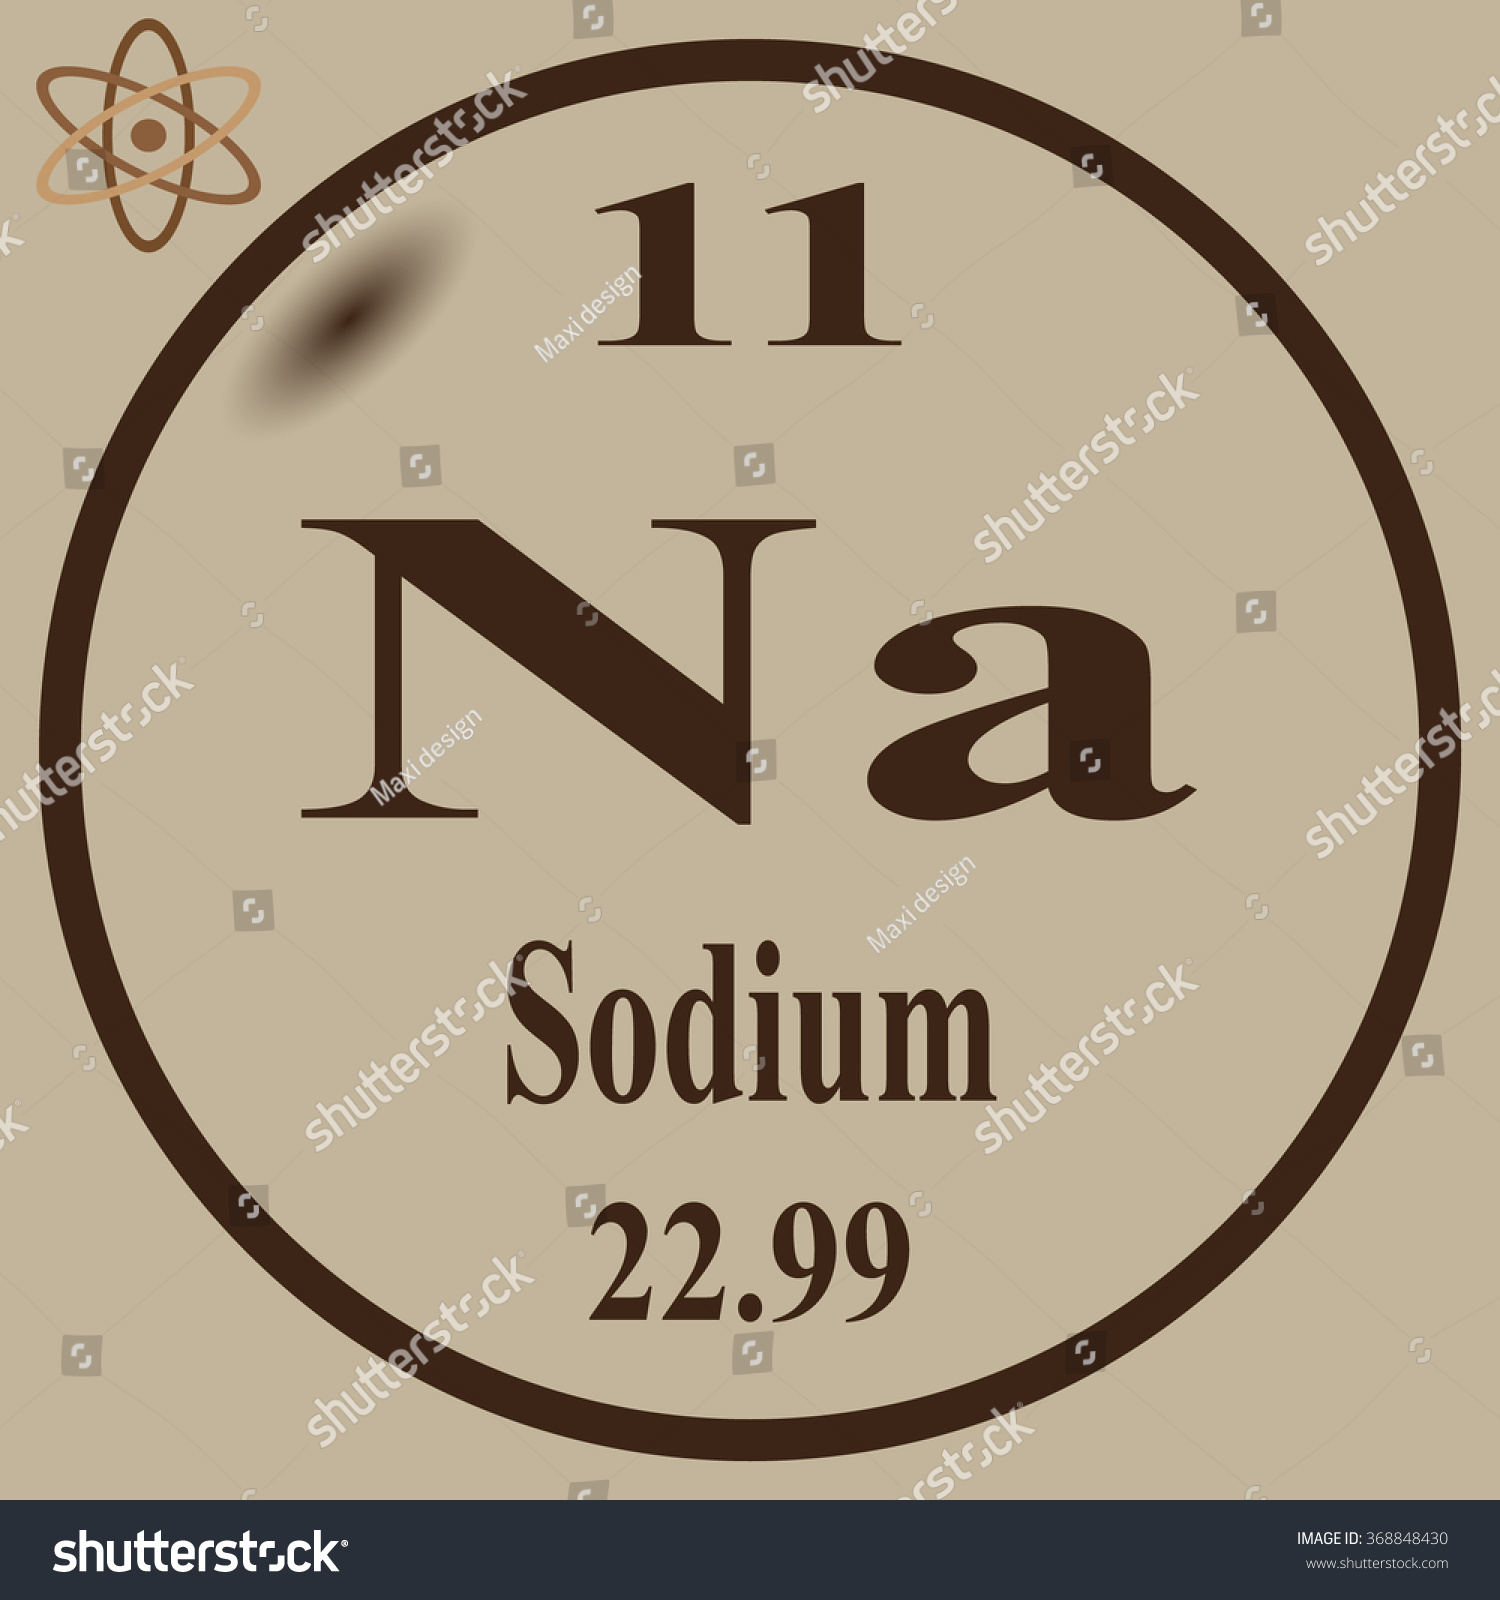 Periodic table of elements sodium images periodic table images periodic table of elements sodium gallery periodic table images periodic table of elements sodium stock vector gamestrikefo Images